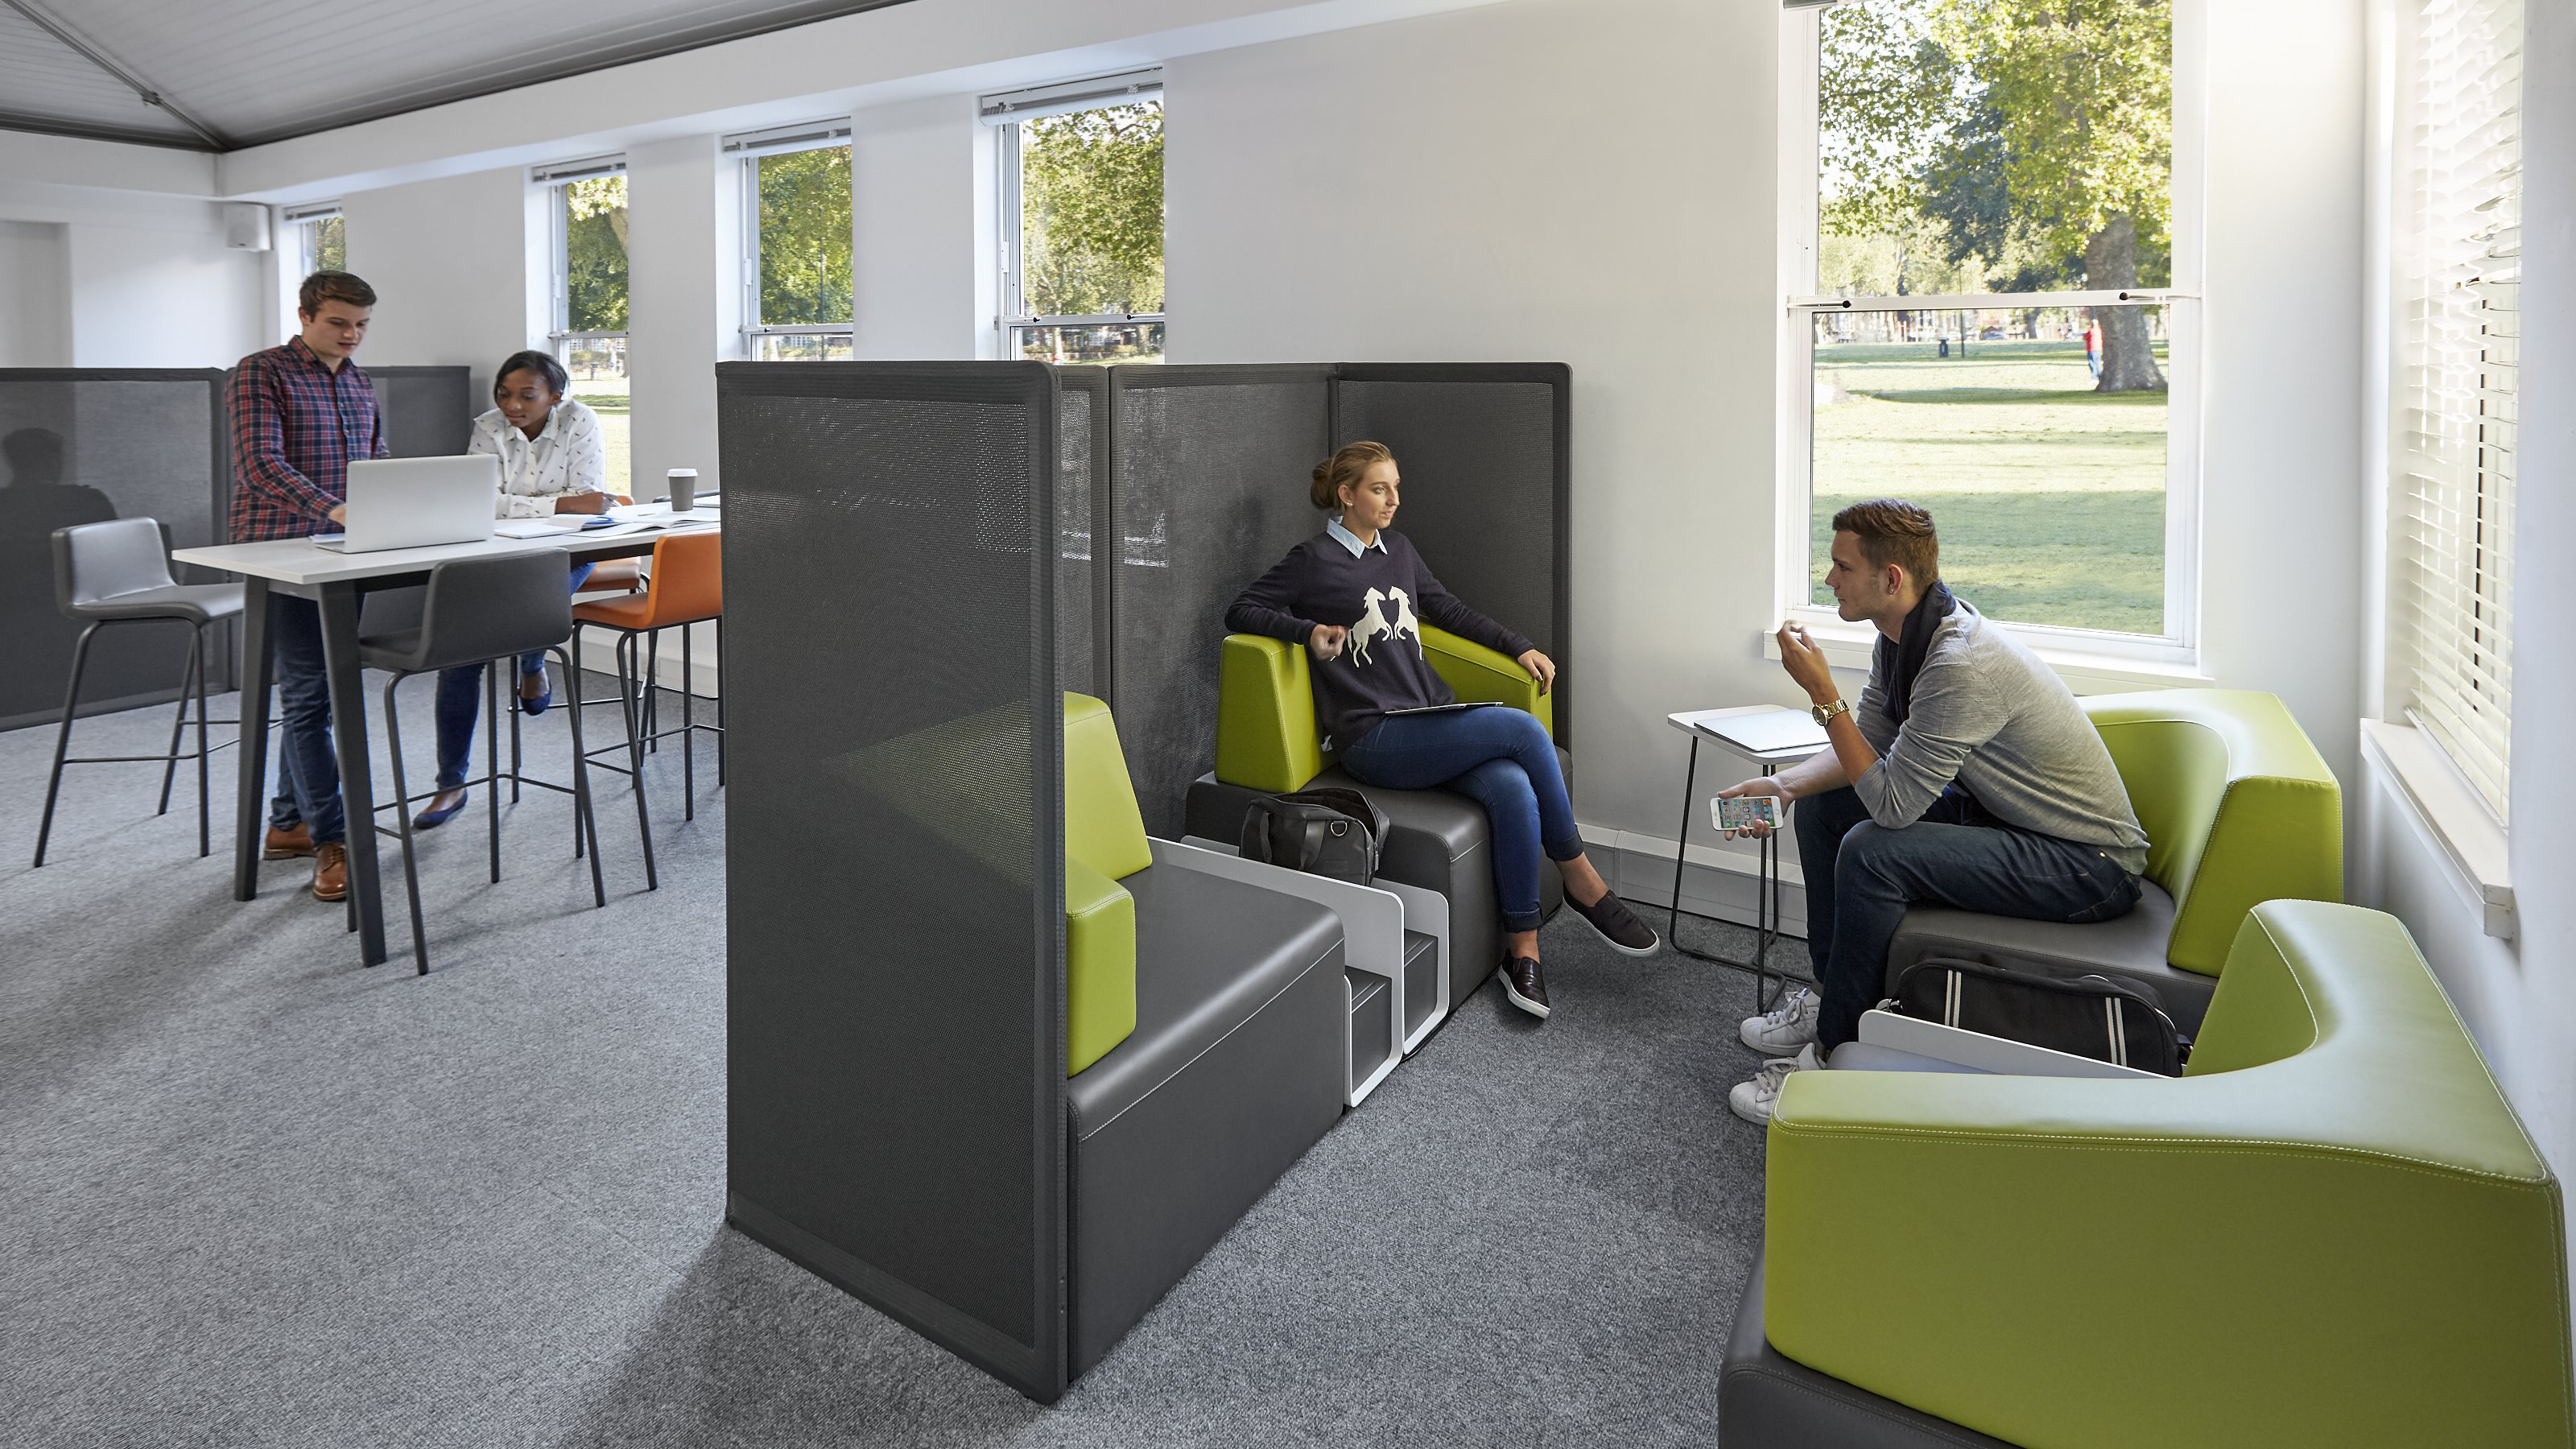 Furniture Layout Software Breakout Spaces For Learning Environments Steelcase